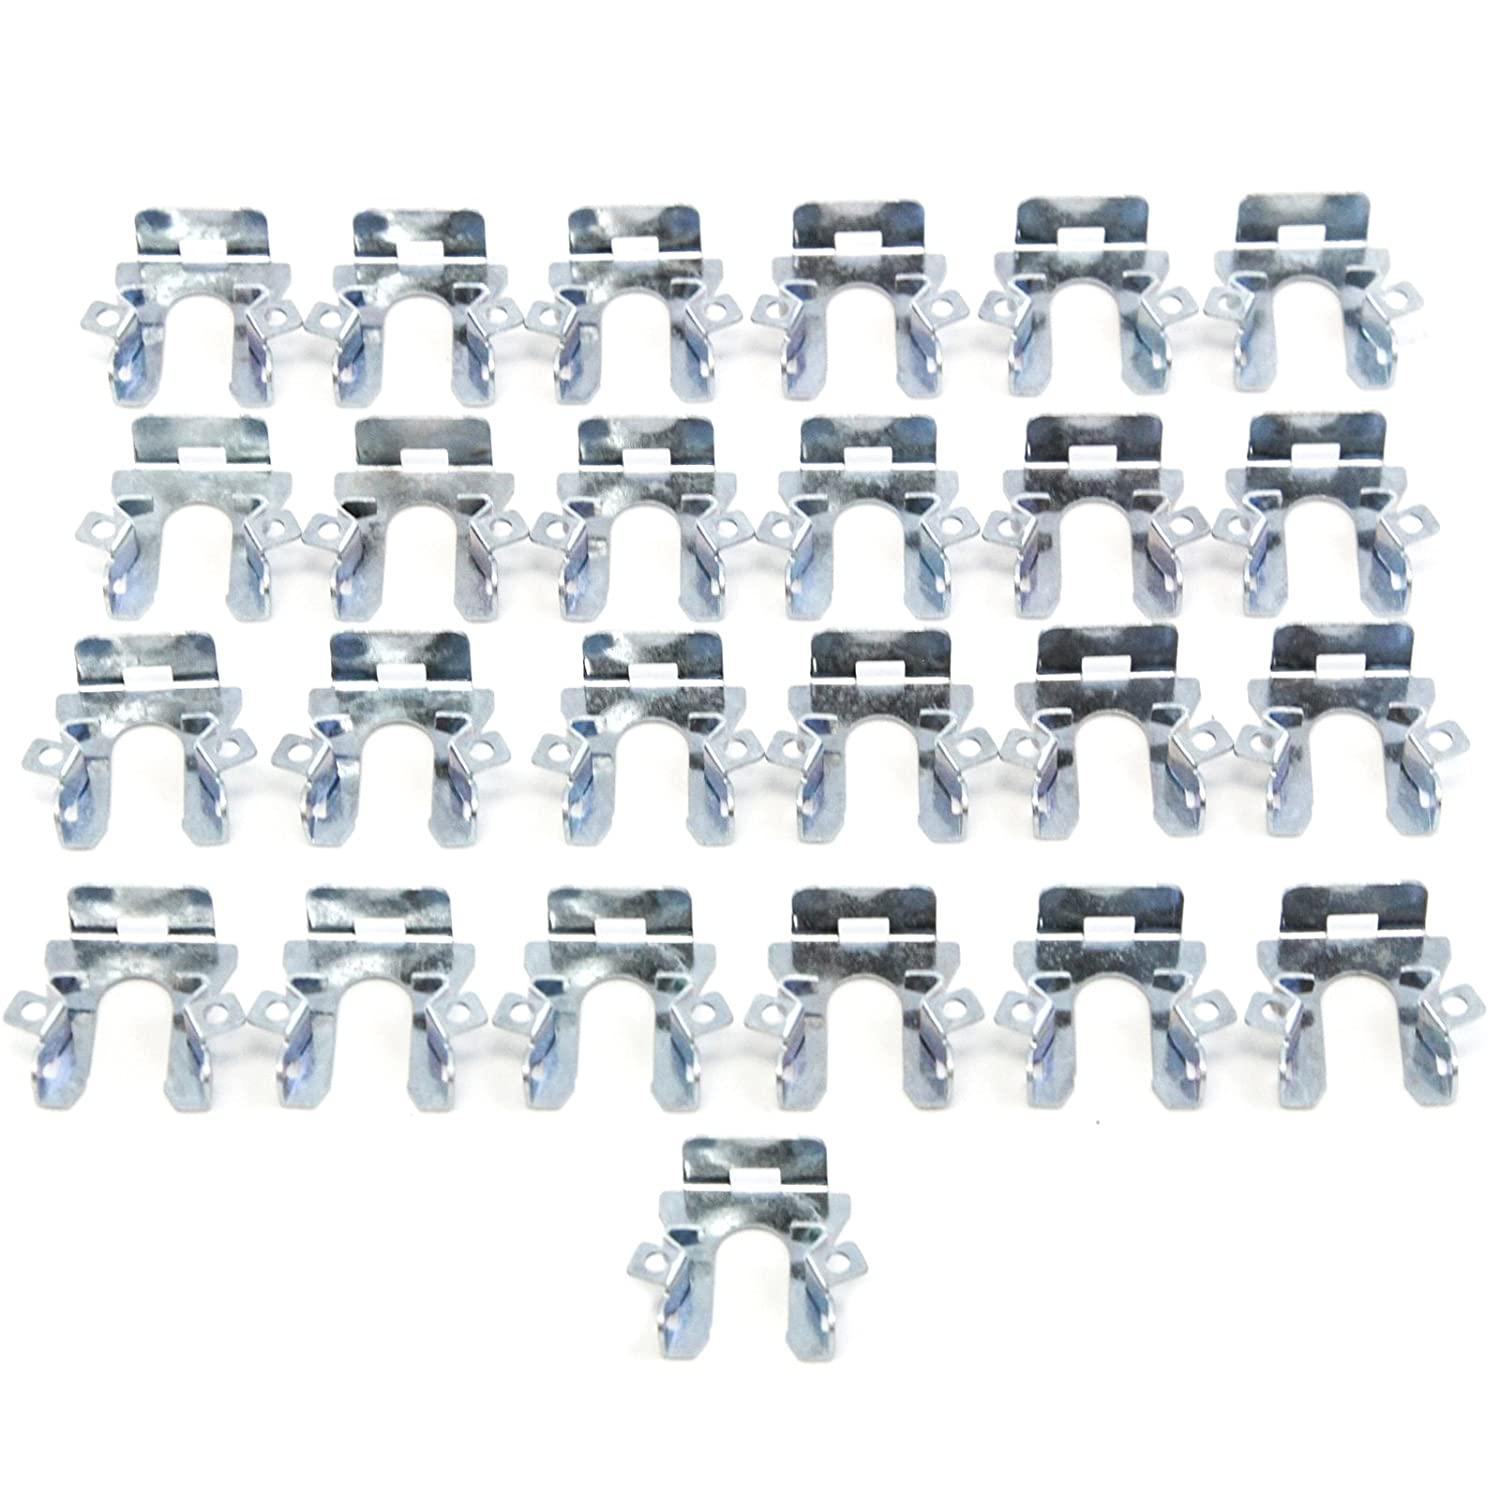 Red Hound Auto 12 Pivot Headlight Retaining Clips Compatible with Ford F-150 F-250 F-350 Bronco 1992-1996